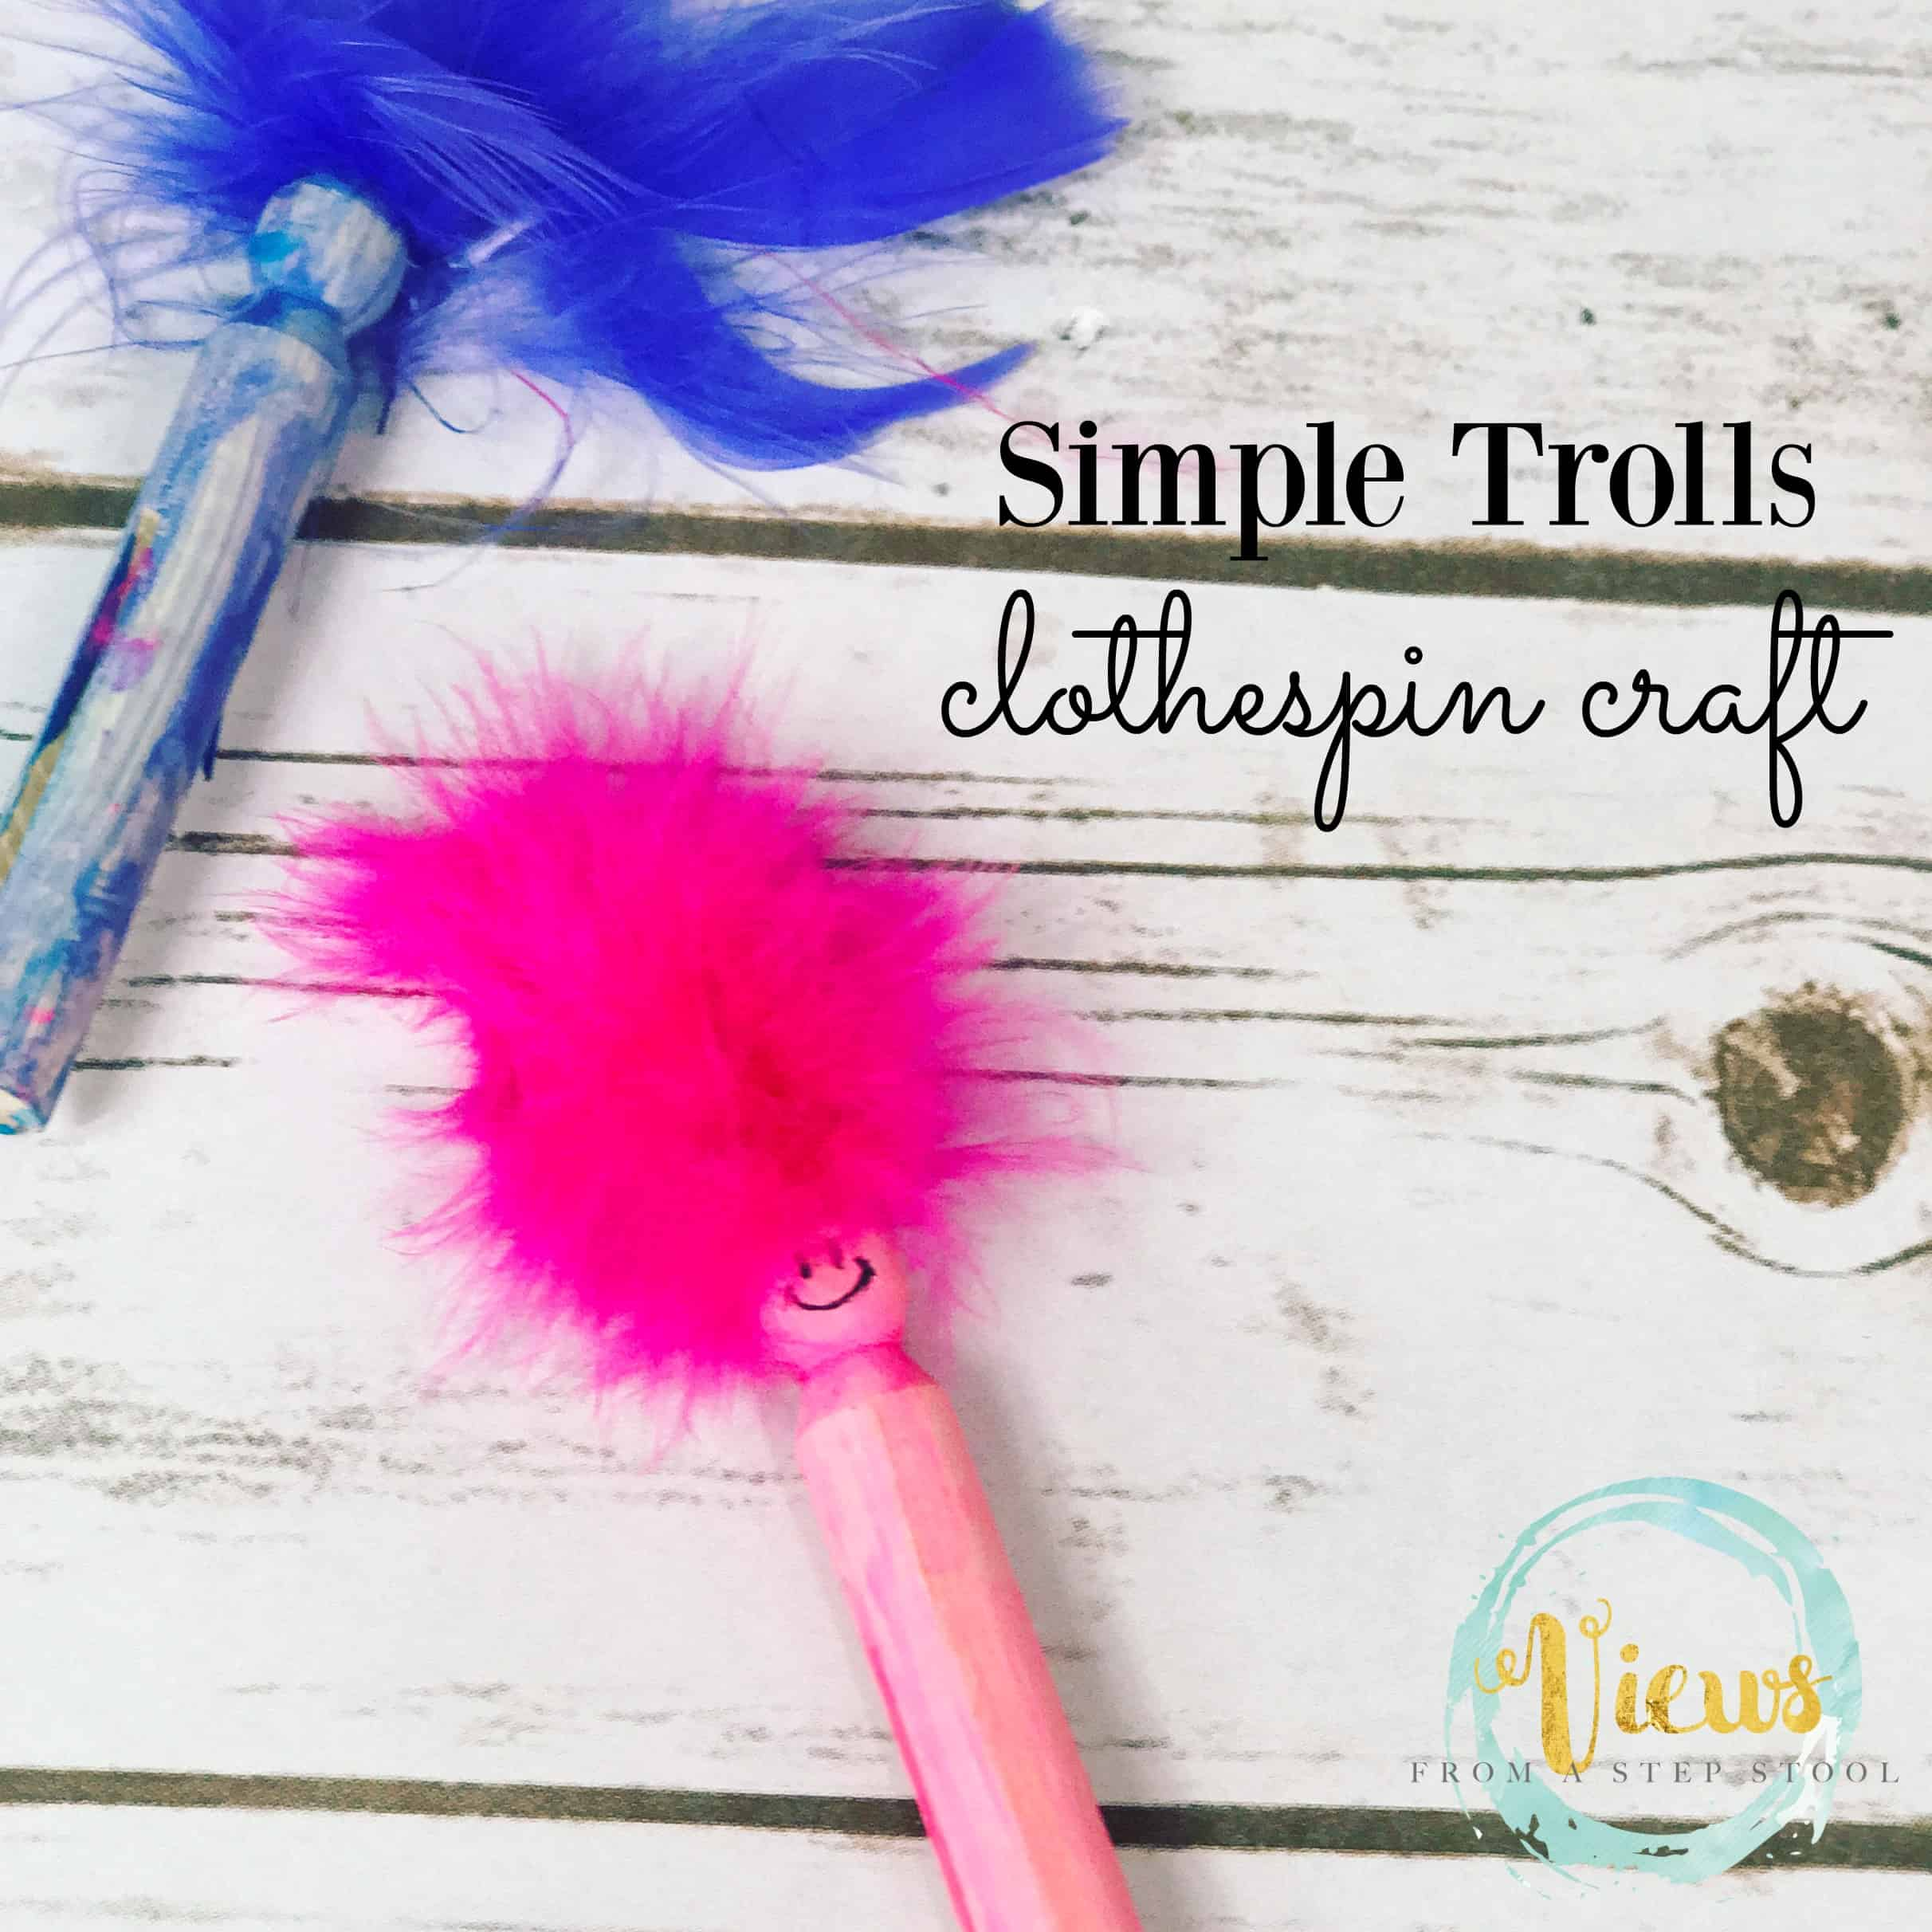 trolls clothespin craft fb